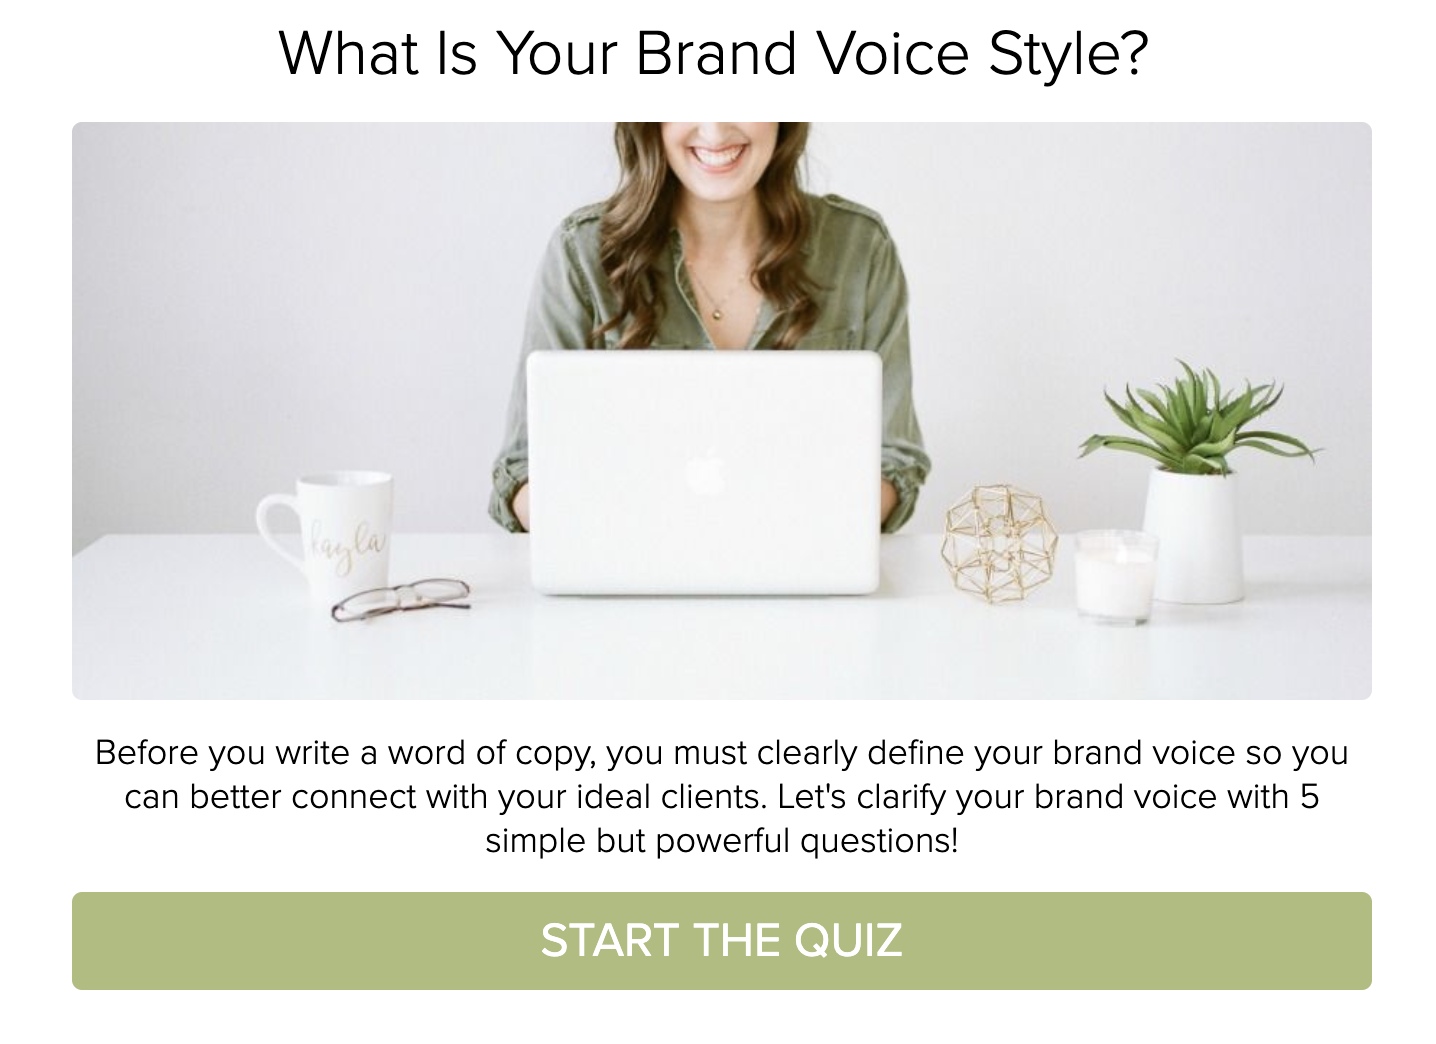 What is your brand voice style quiz cover